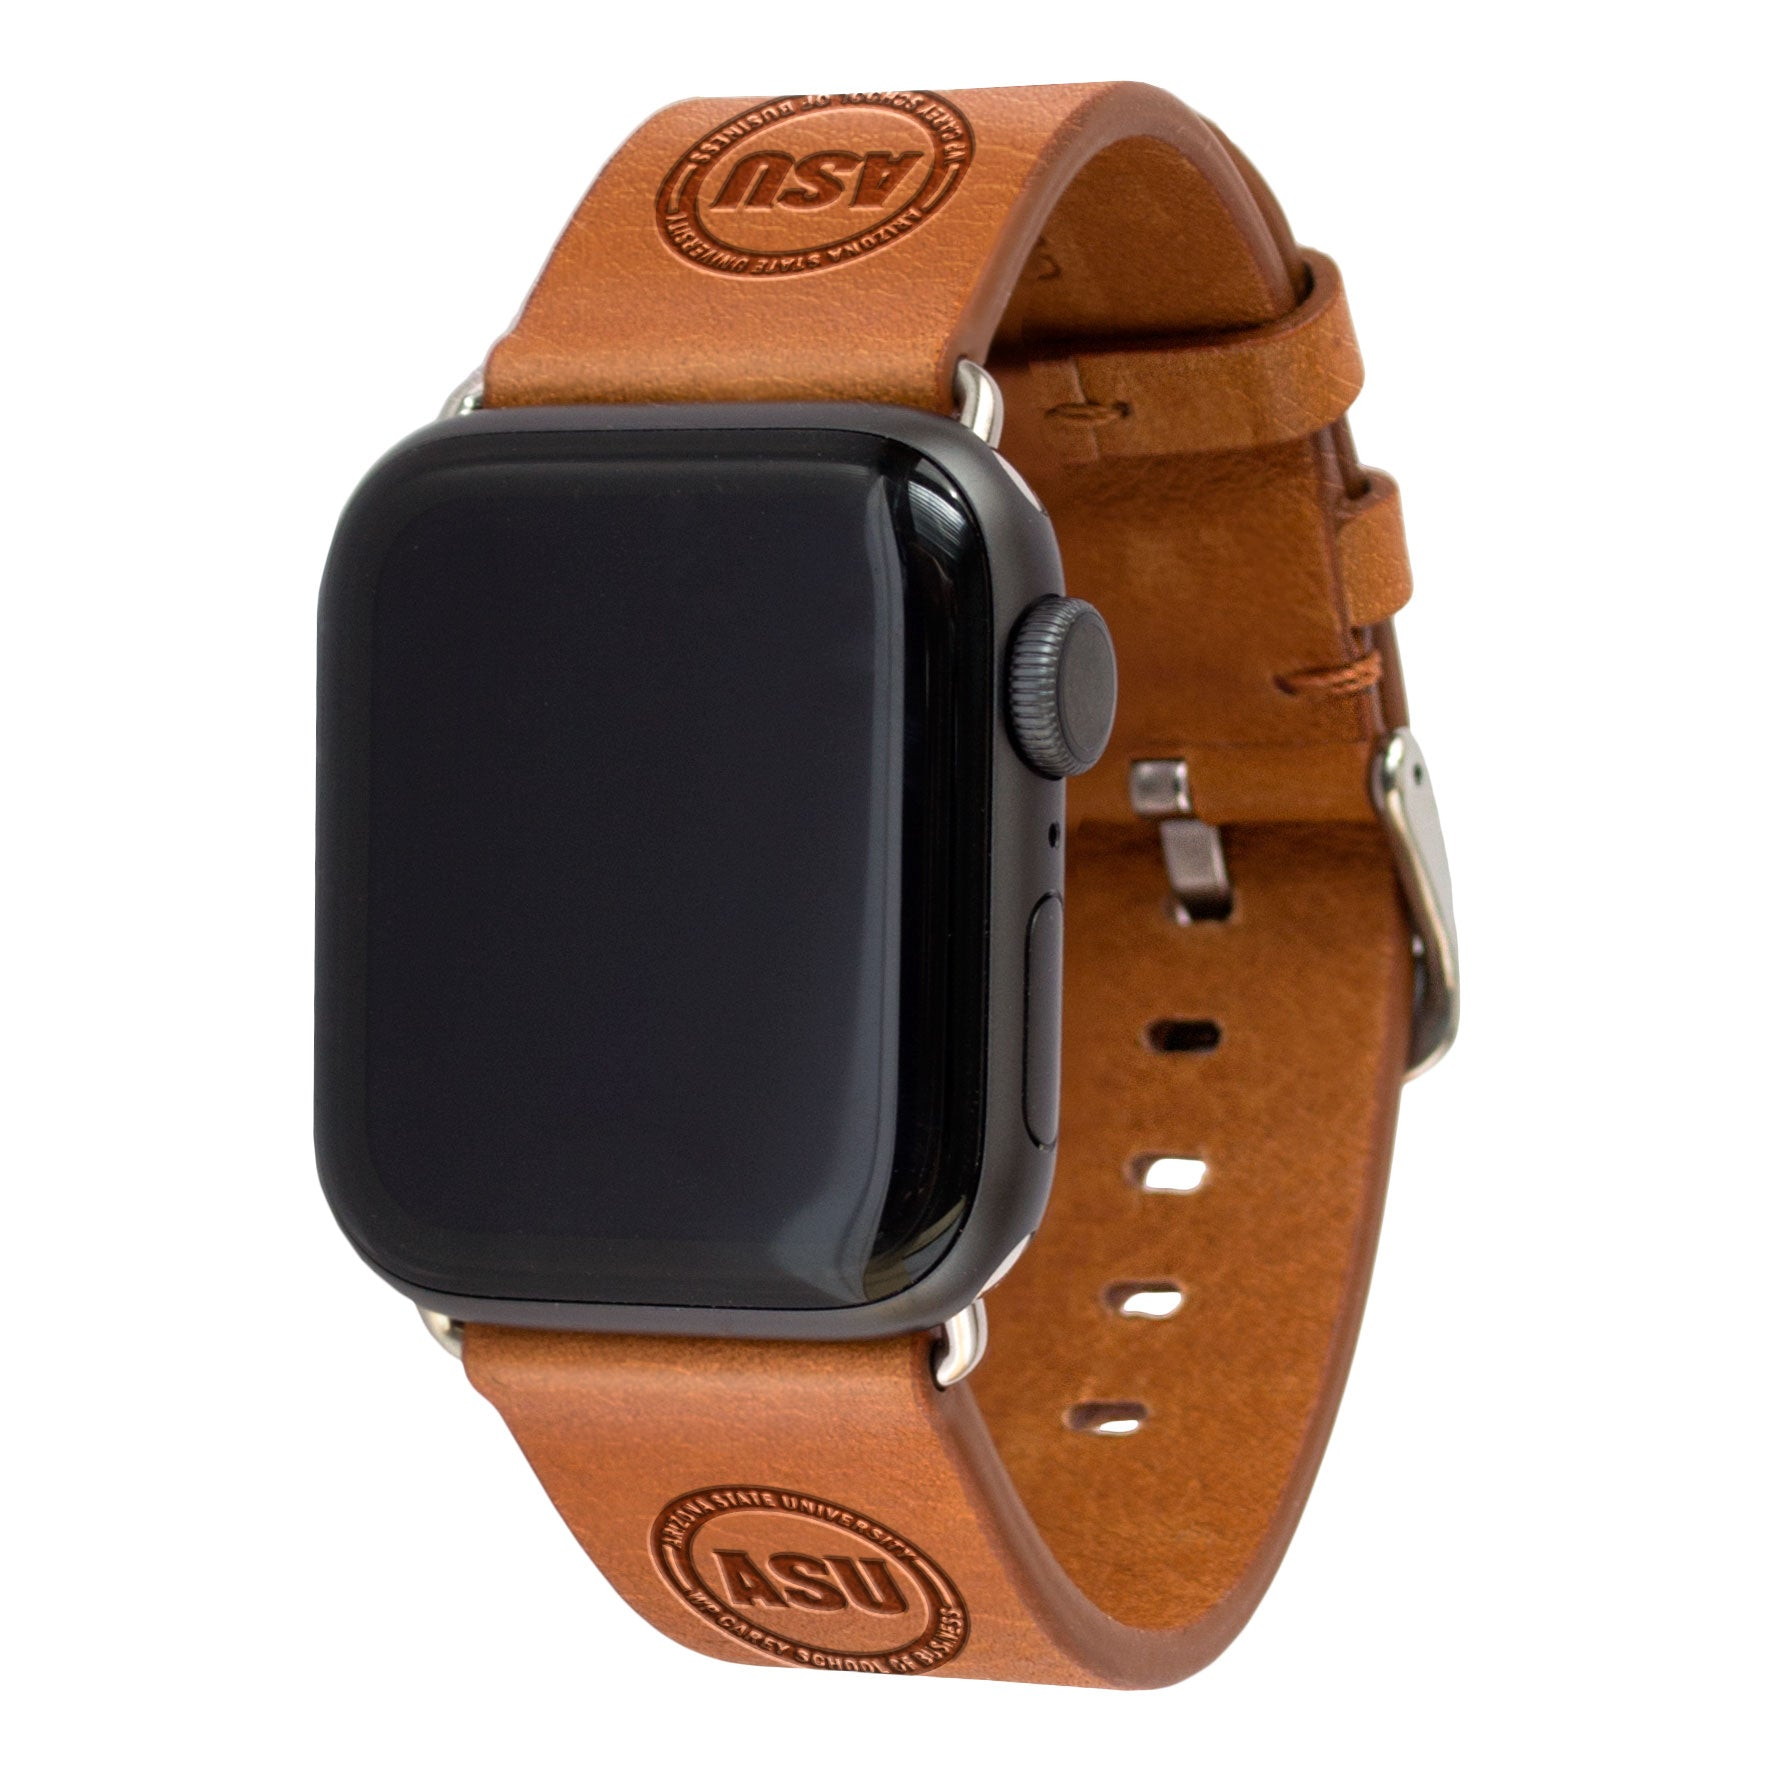 W. P. Carey School of Business Leather Apple Watch Band